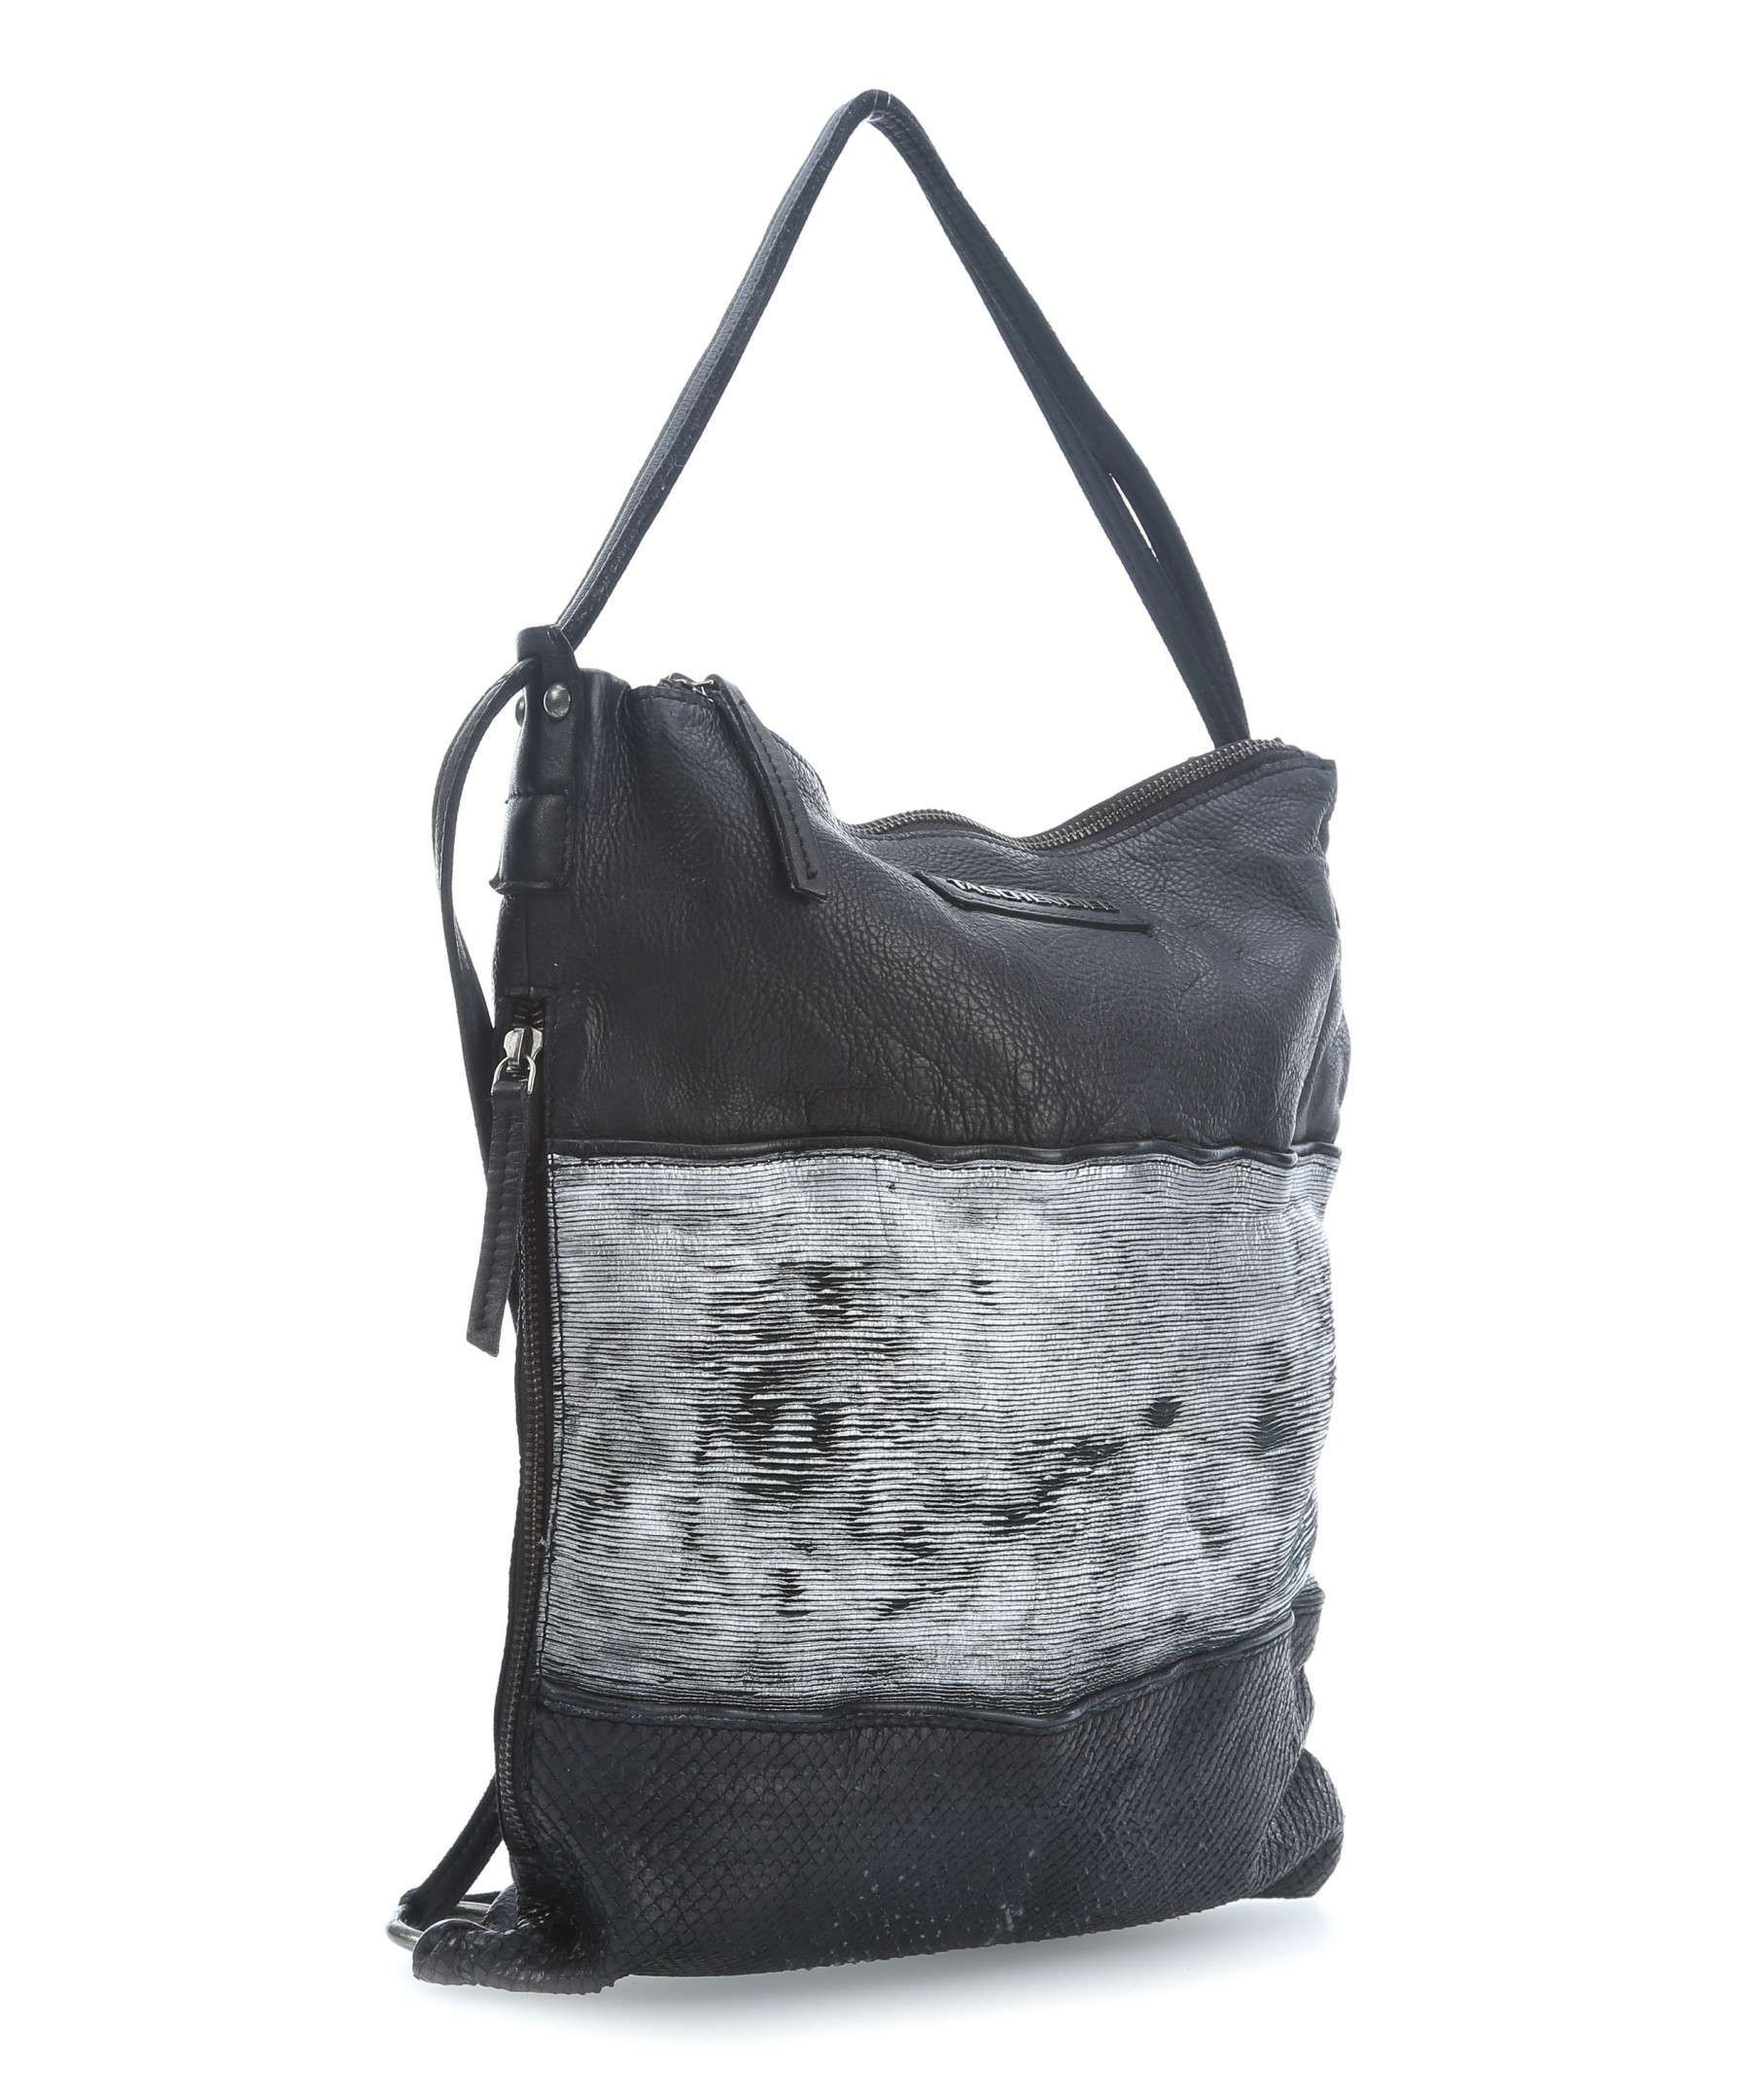 Taschendieb Wien Hobo grained leather anthracite TD0085a